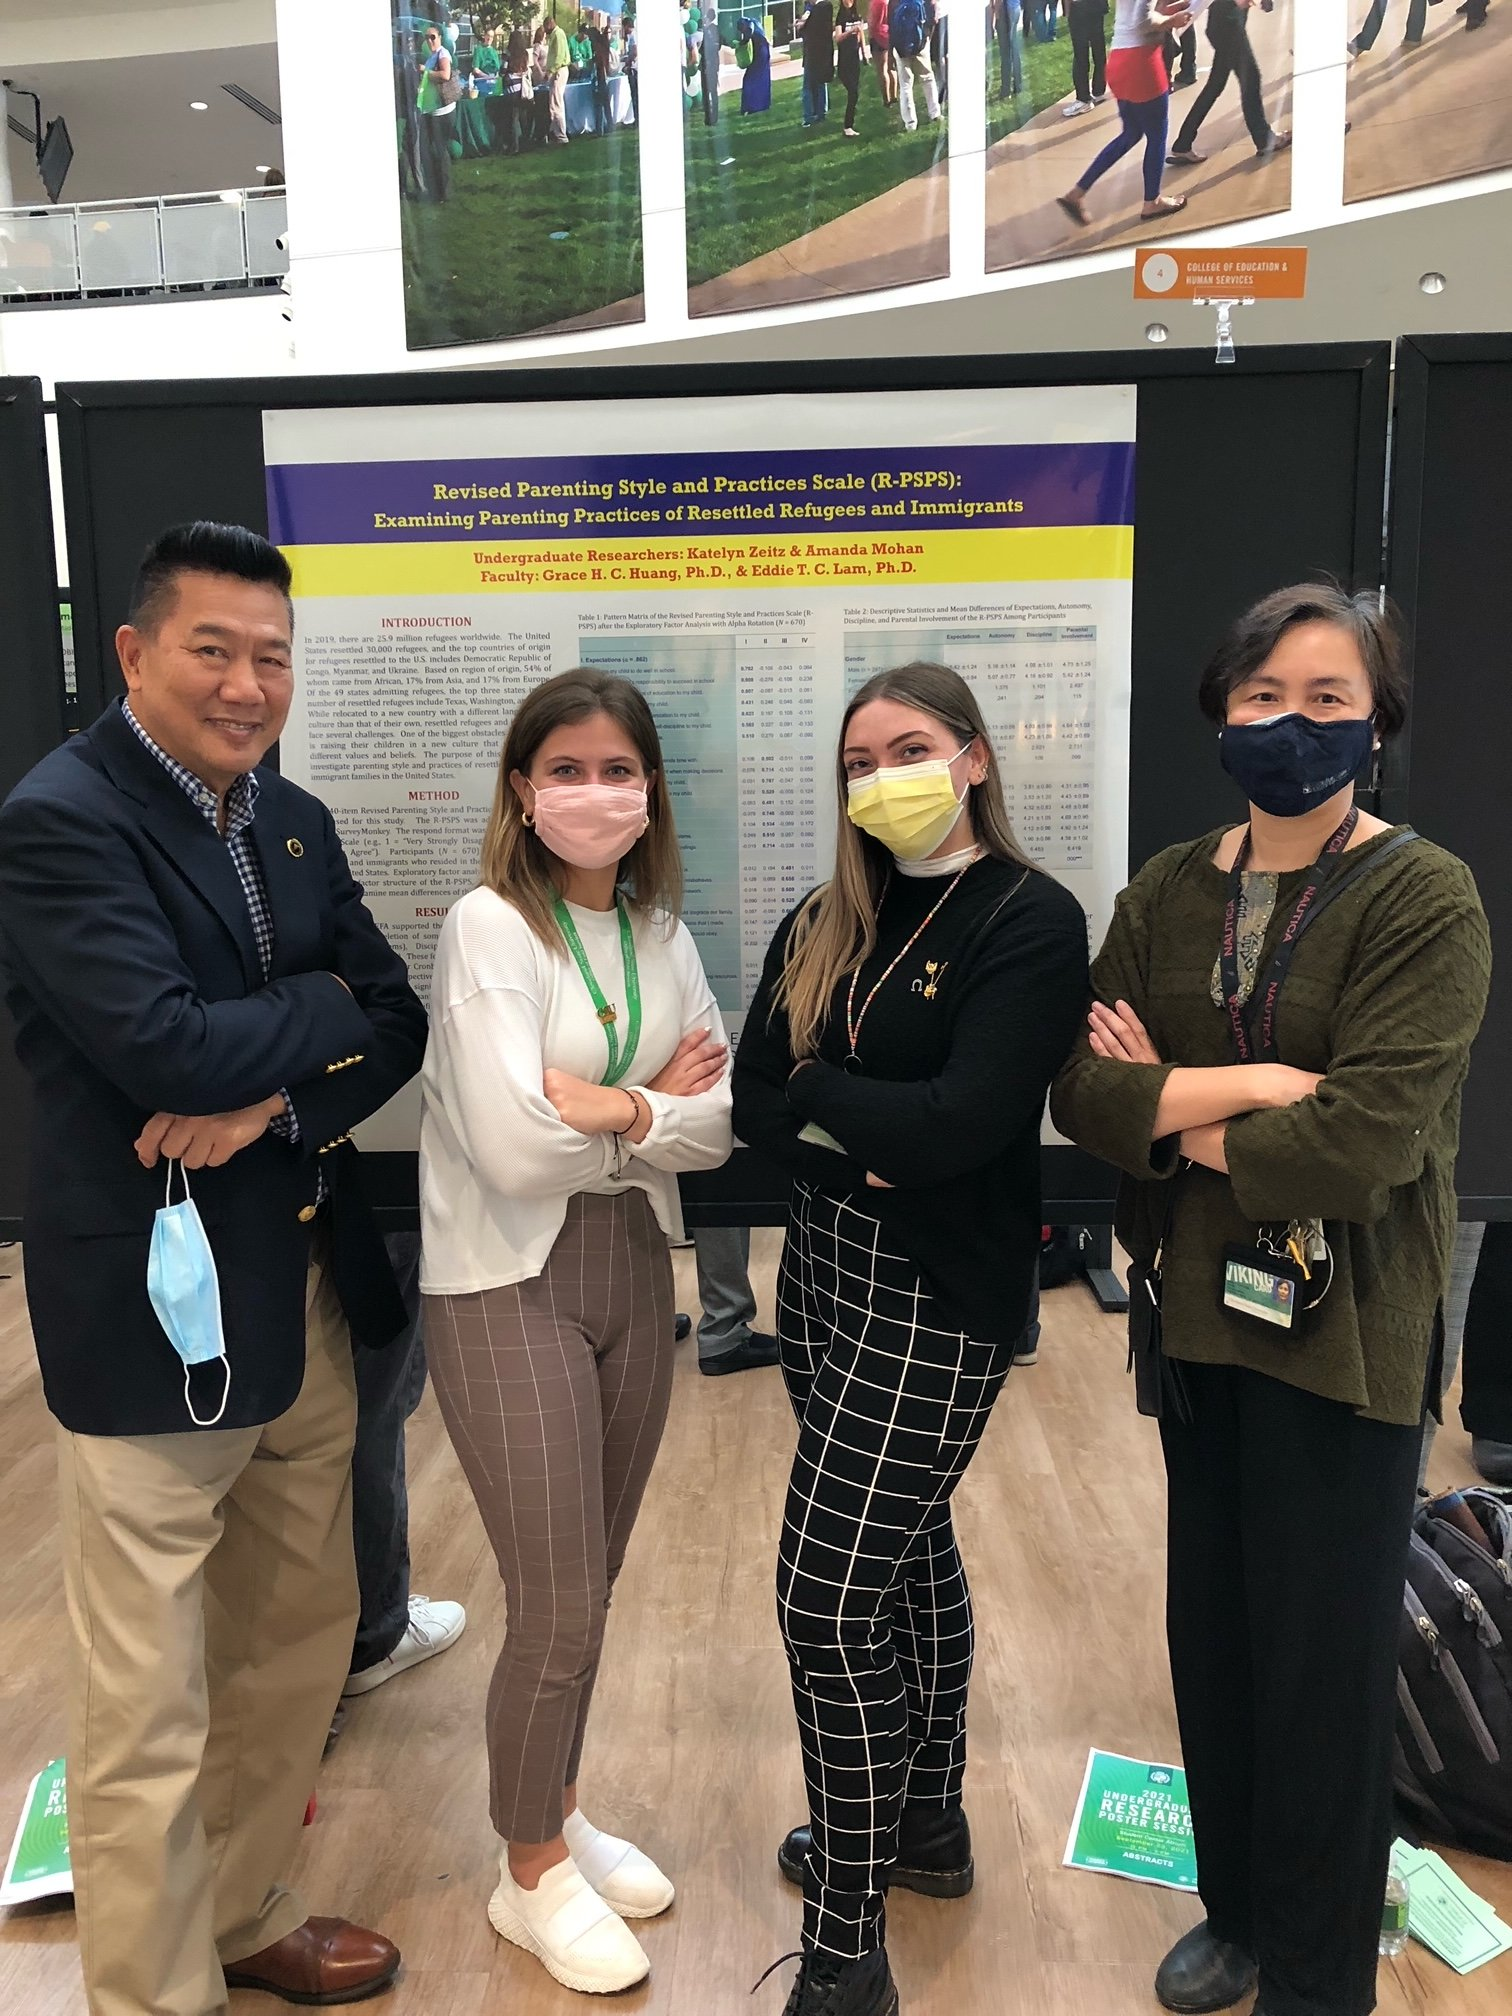 poster session winners